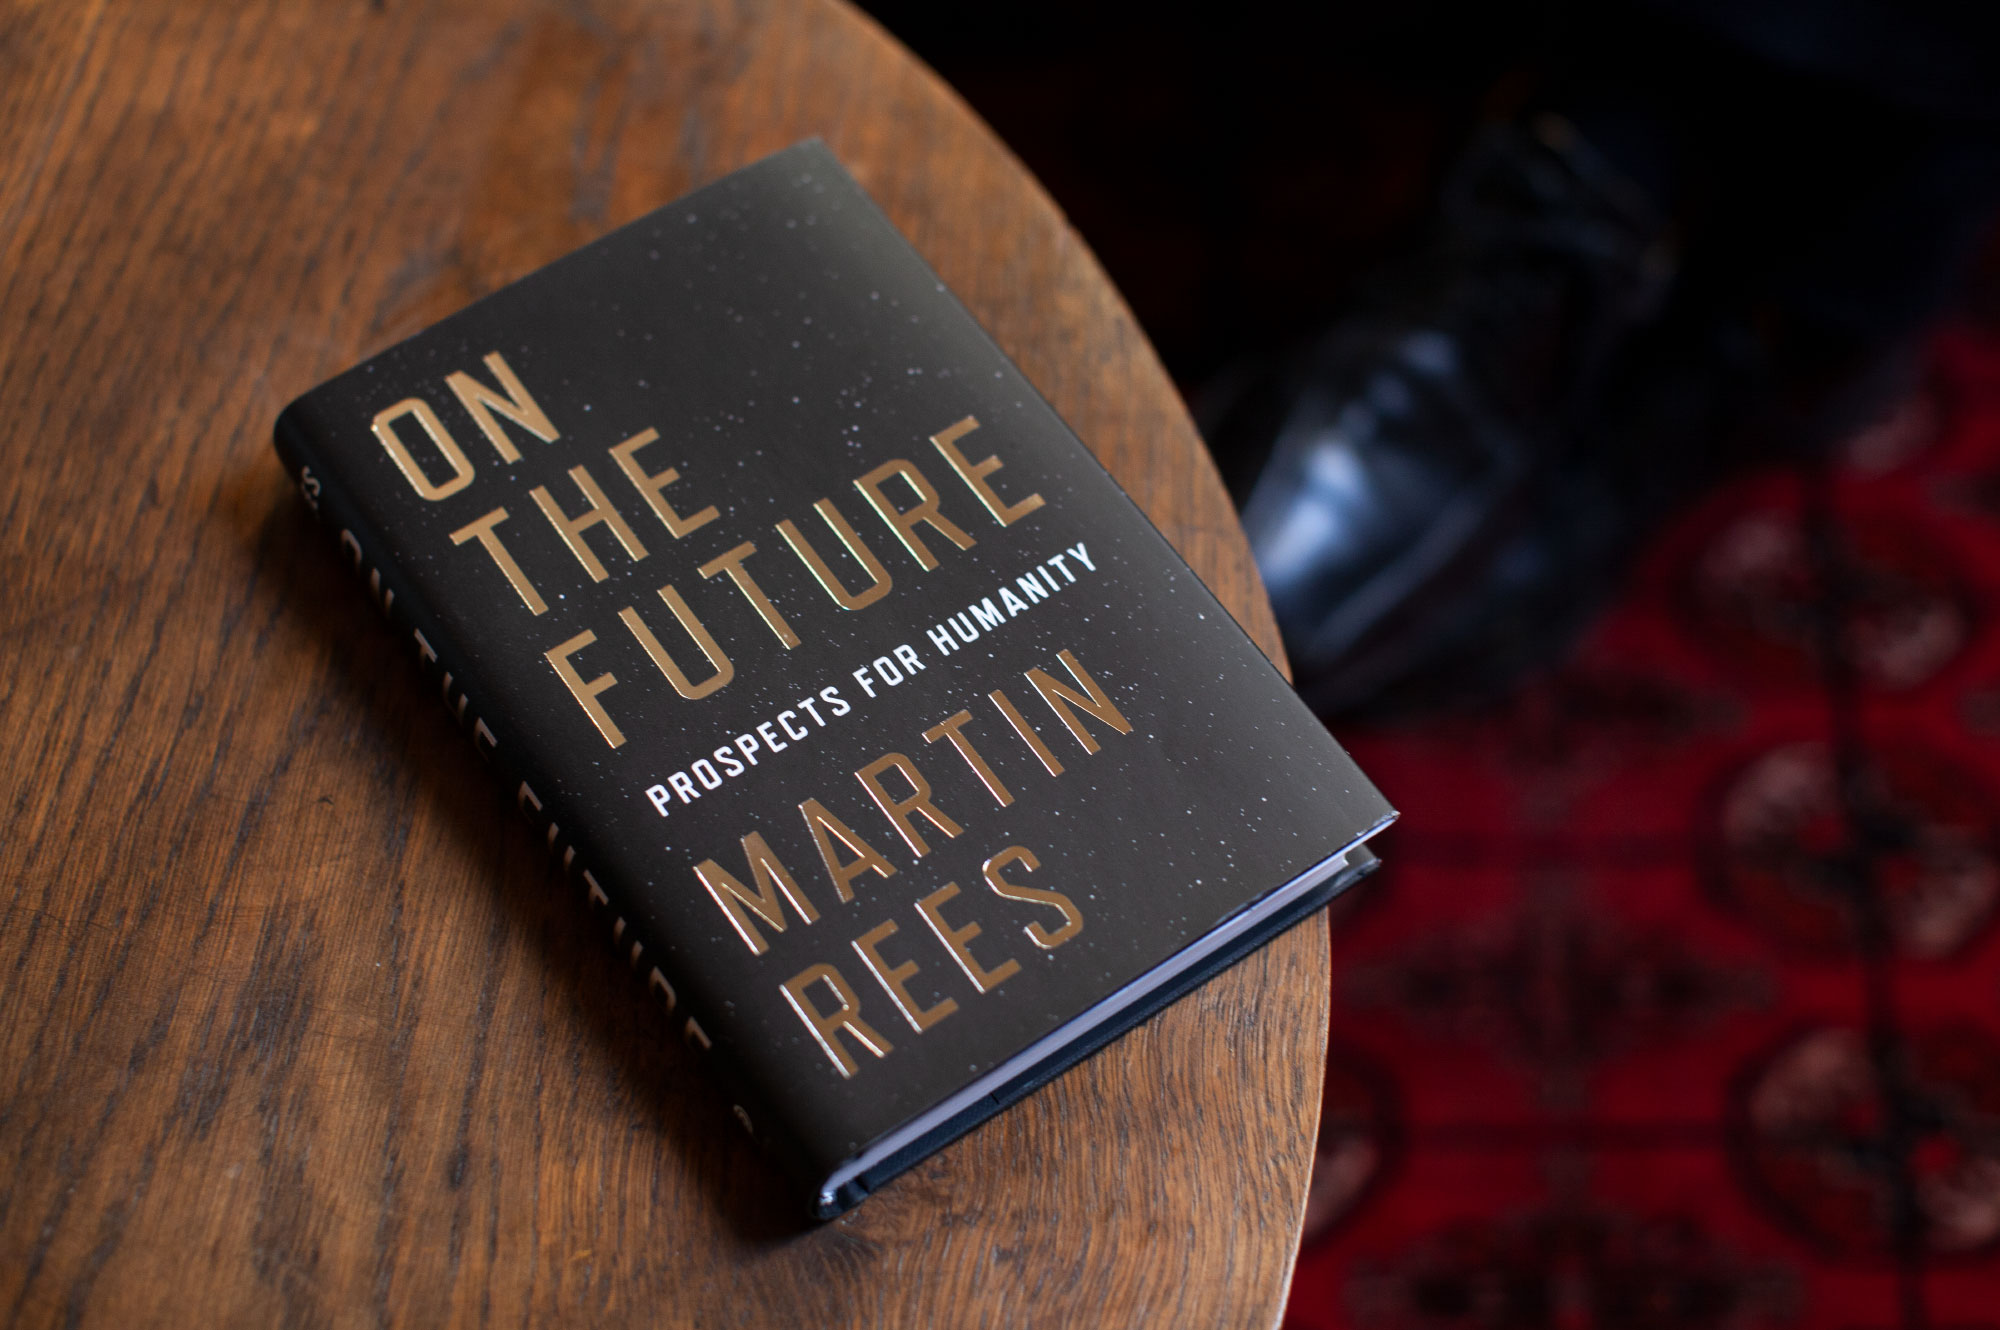 Book: On the Future by Martin Rees